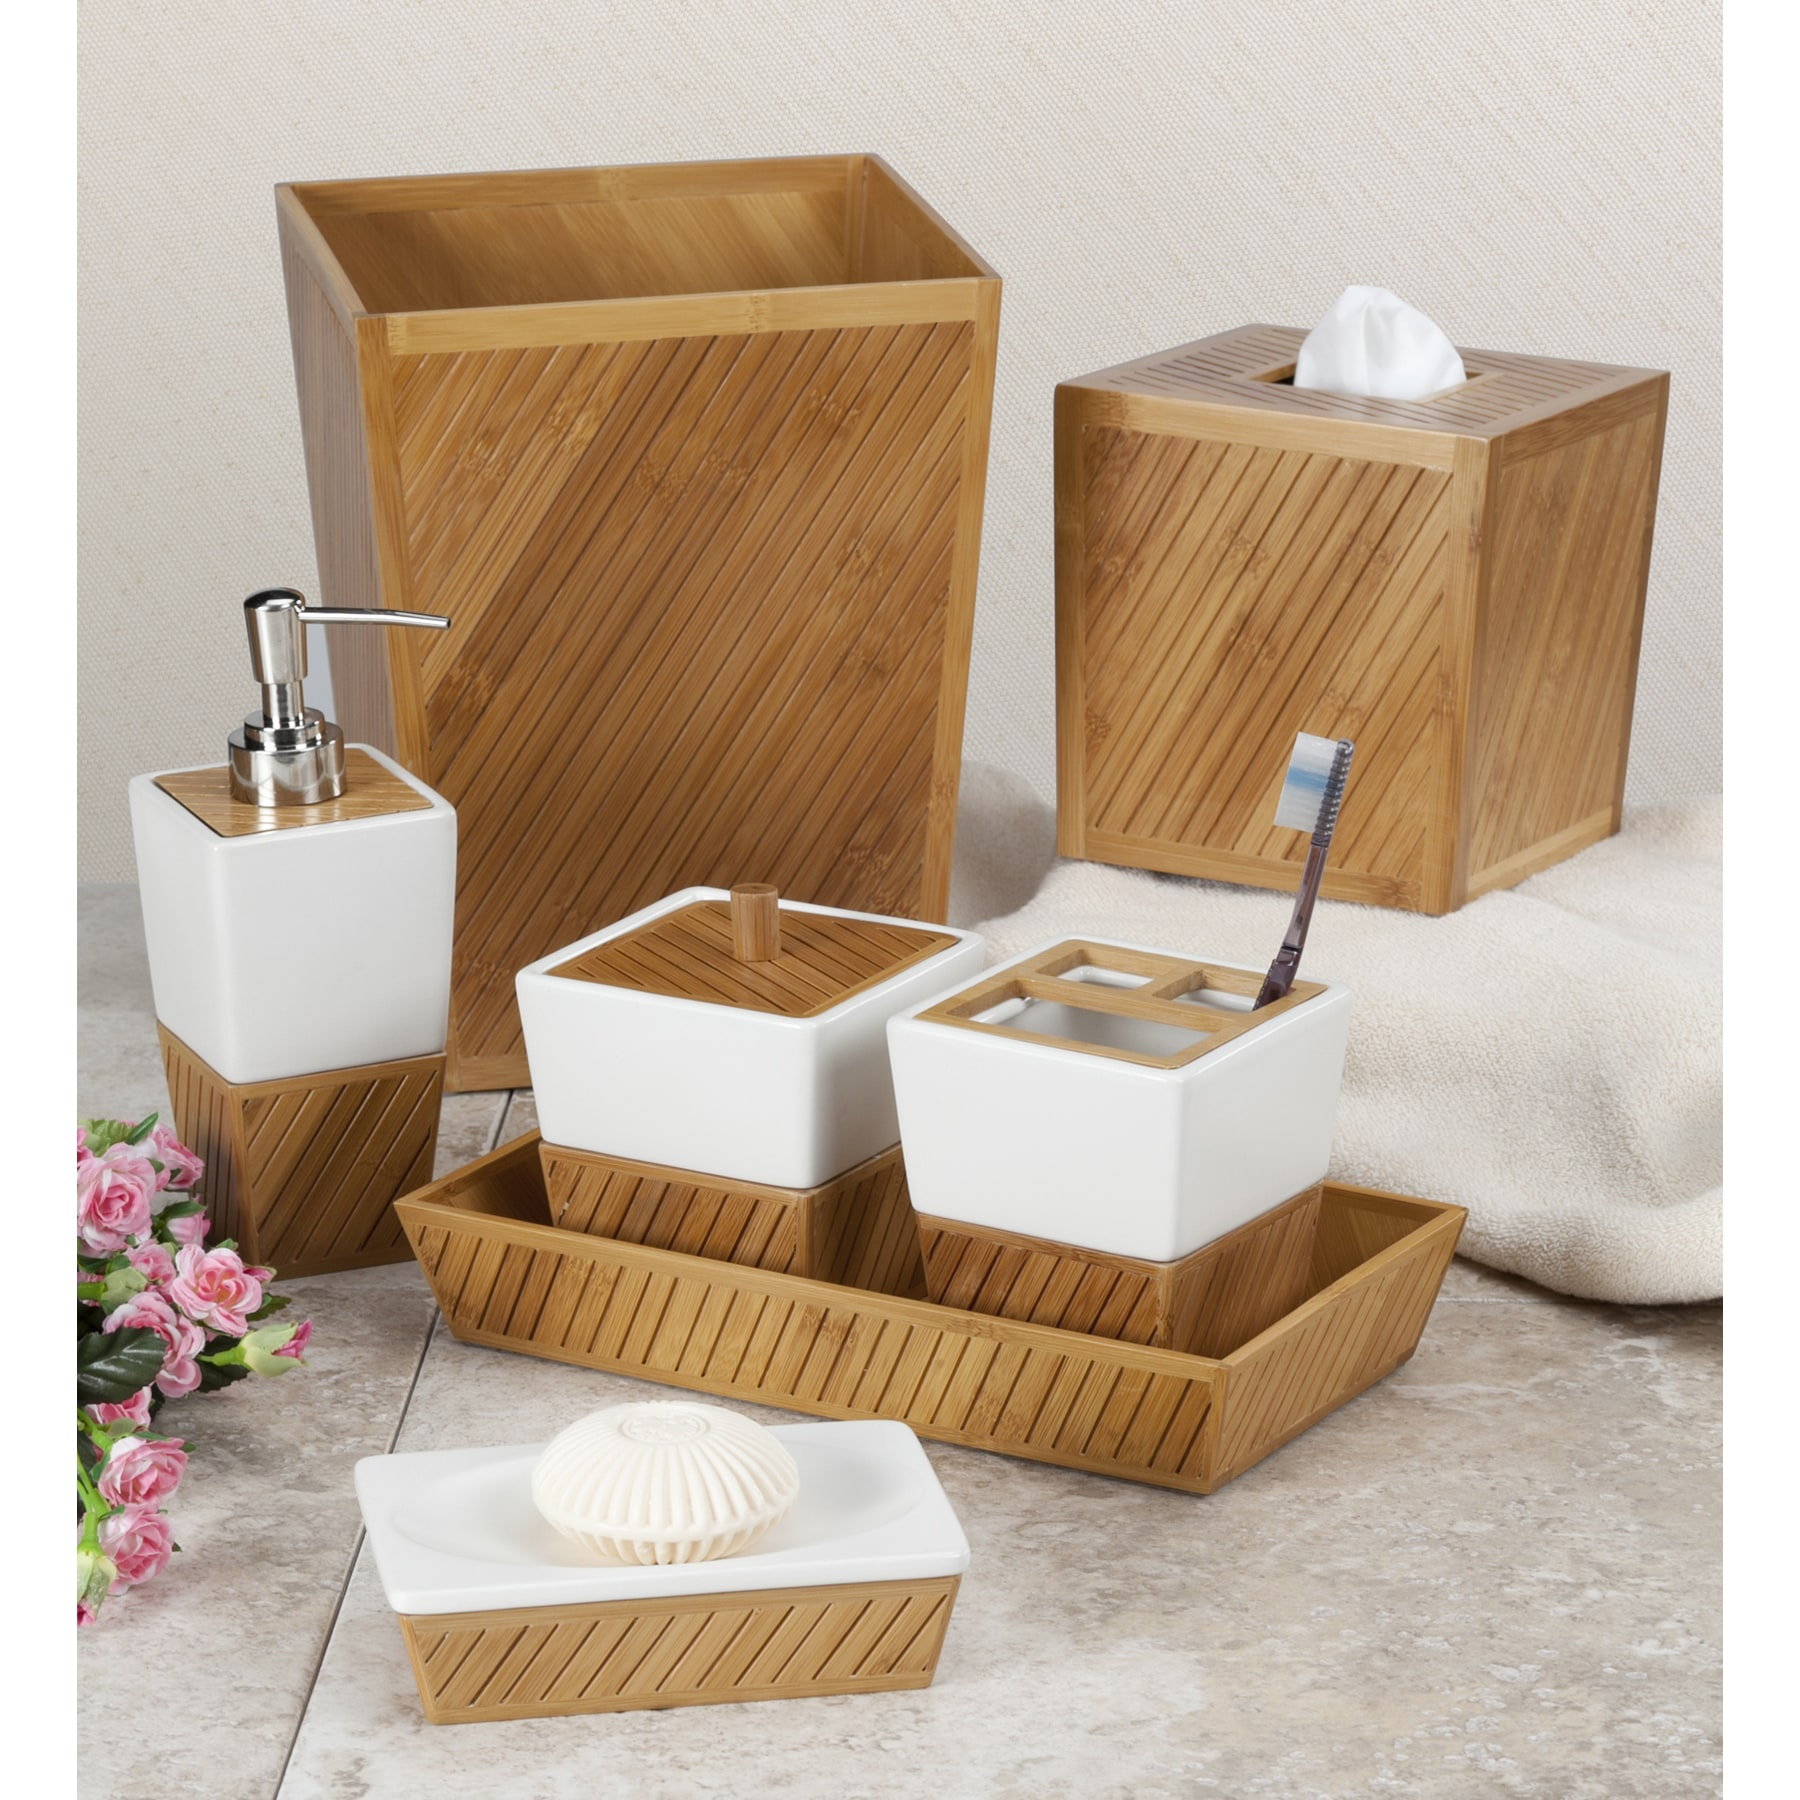 Bathroom Accessories | Find Great Bath & Towels Deals Shopping at ...